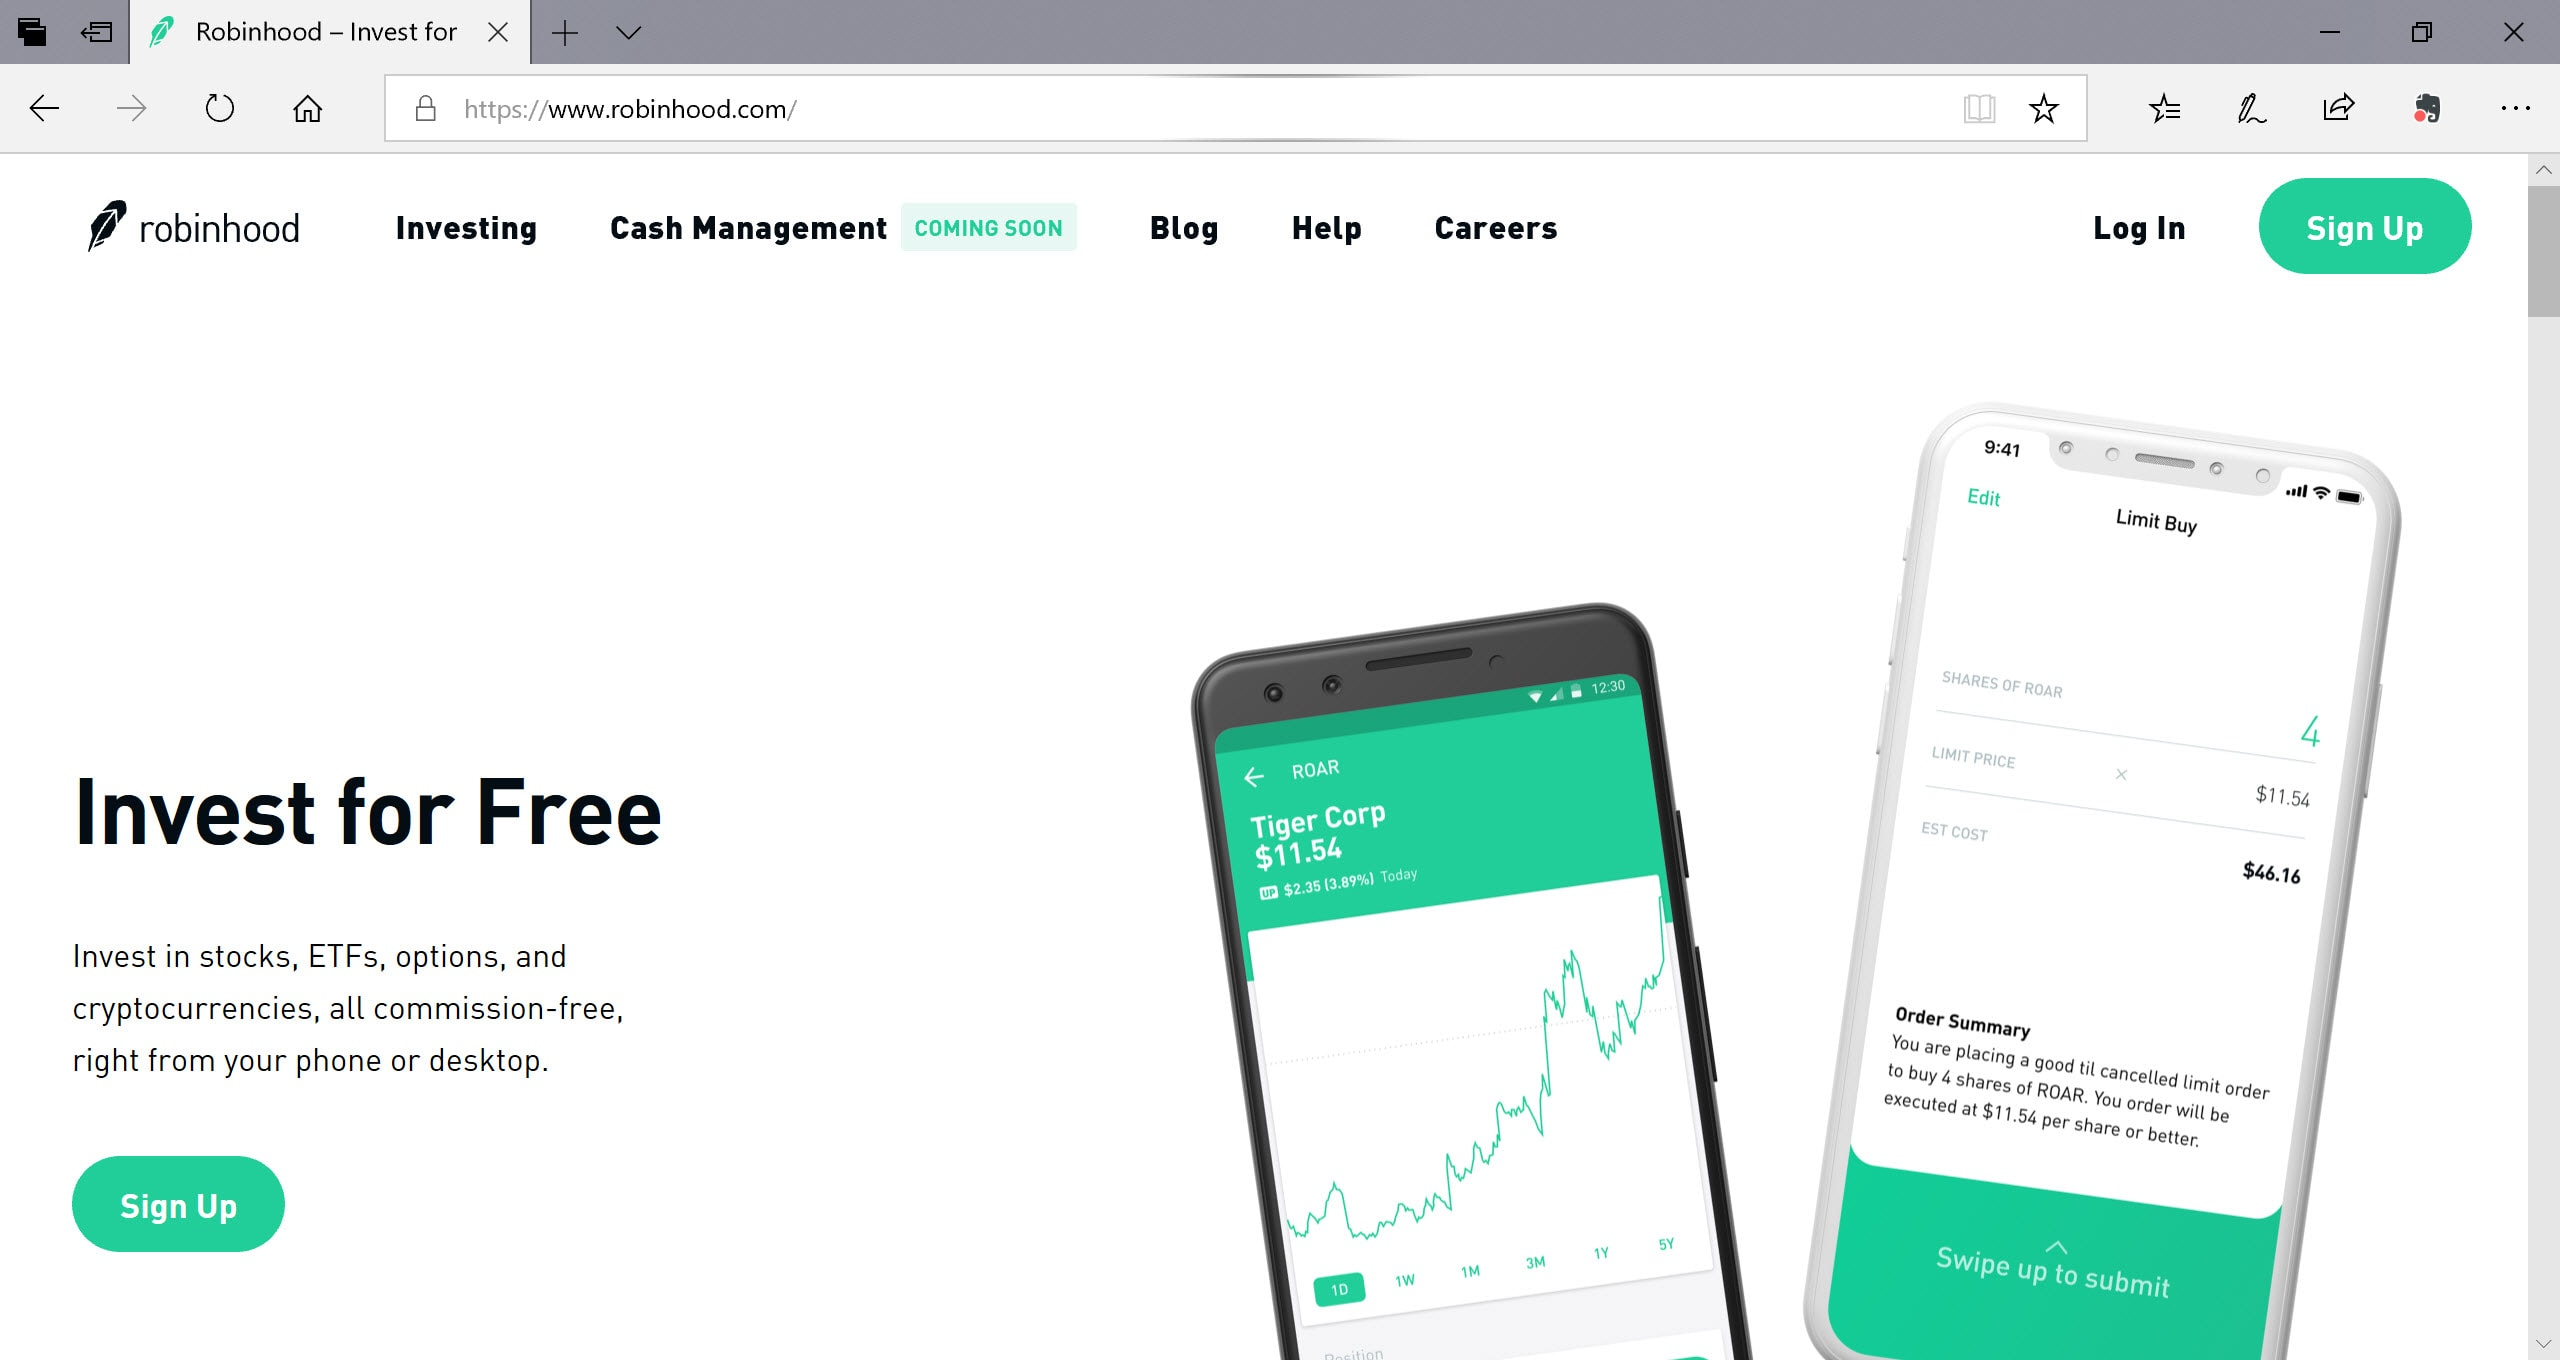 Robinhood Commission-Free Investing Deals Best Buy July